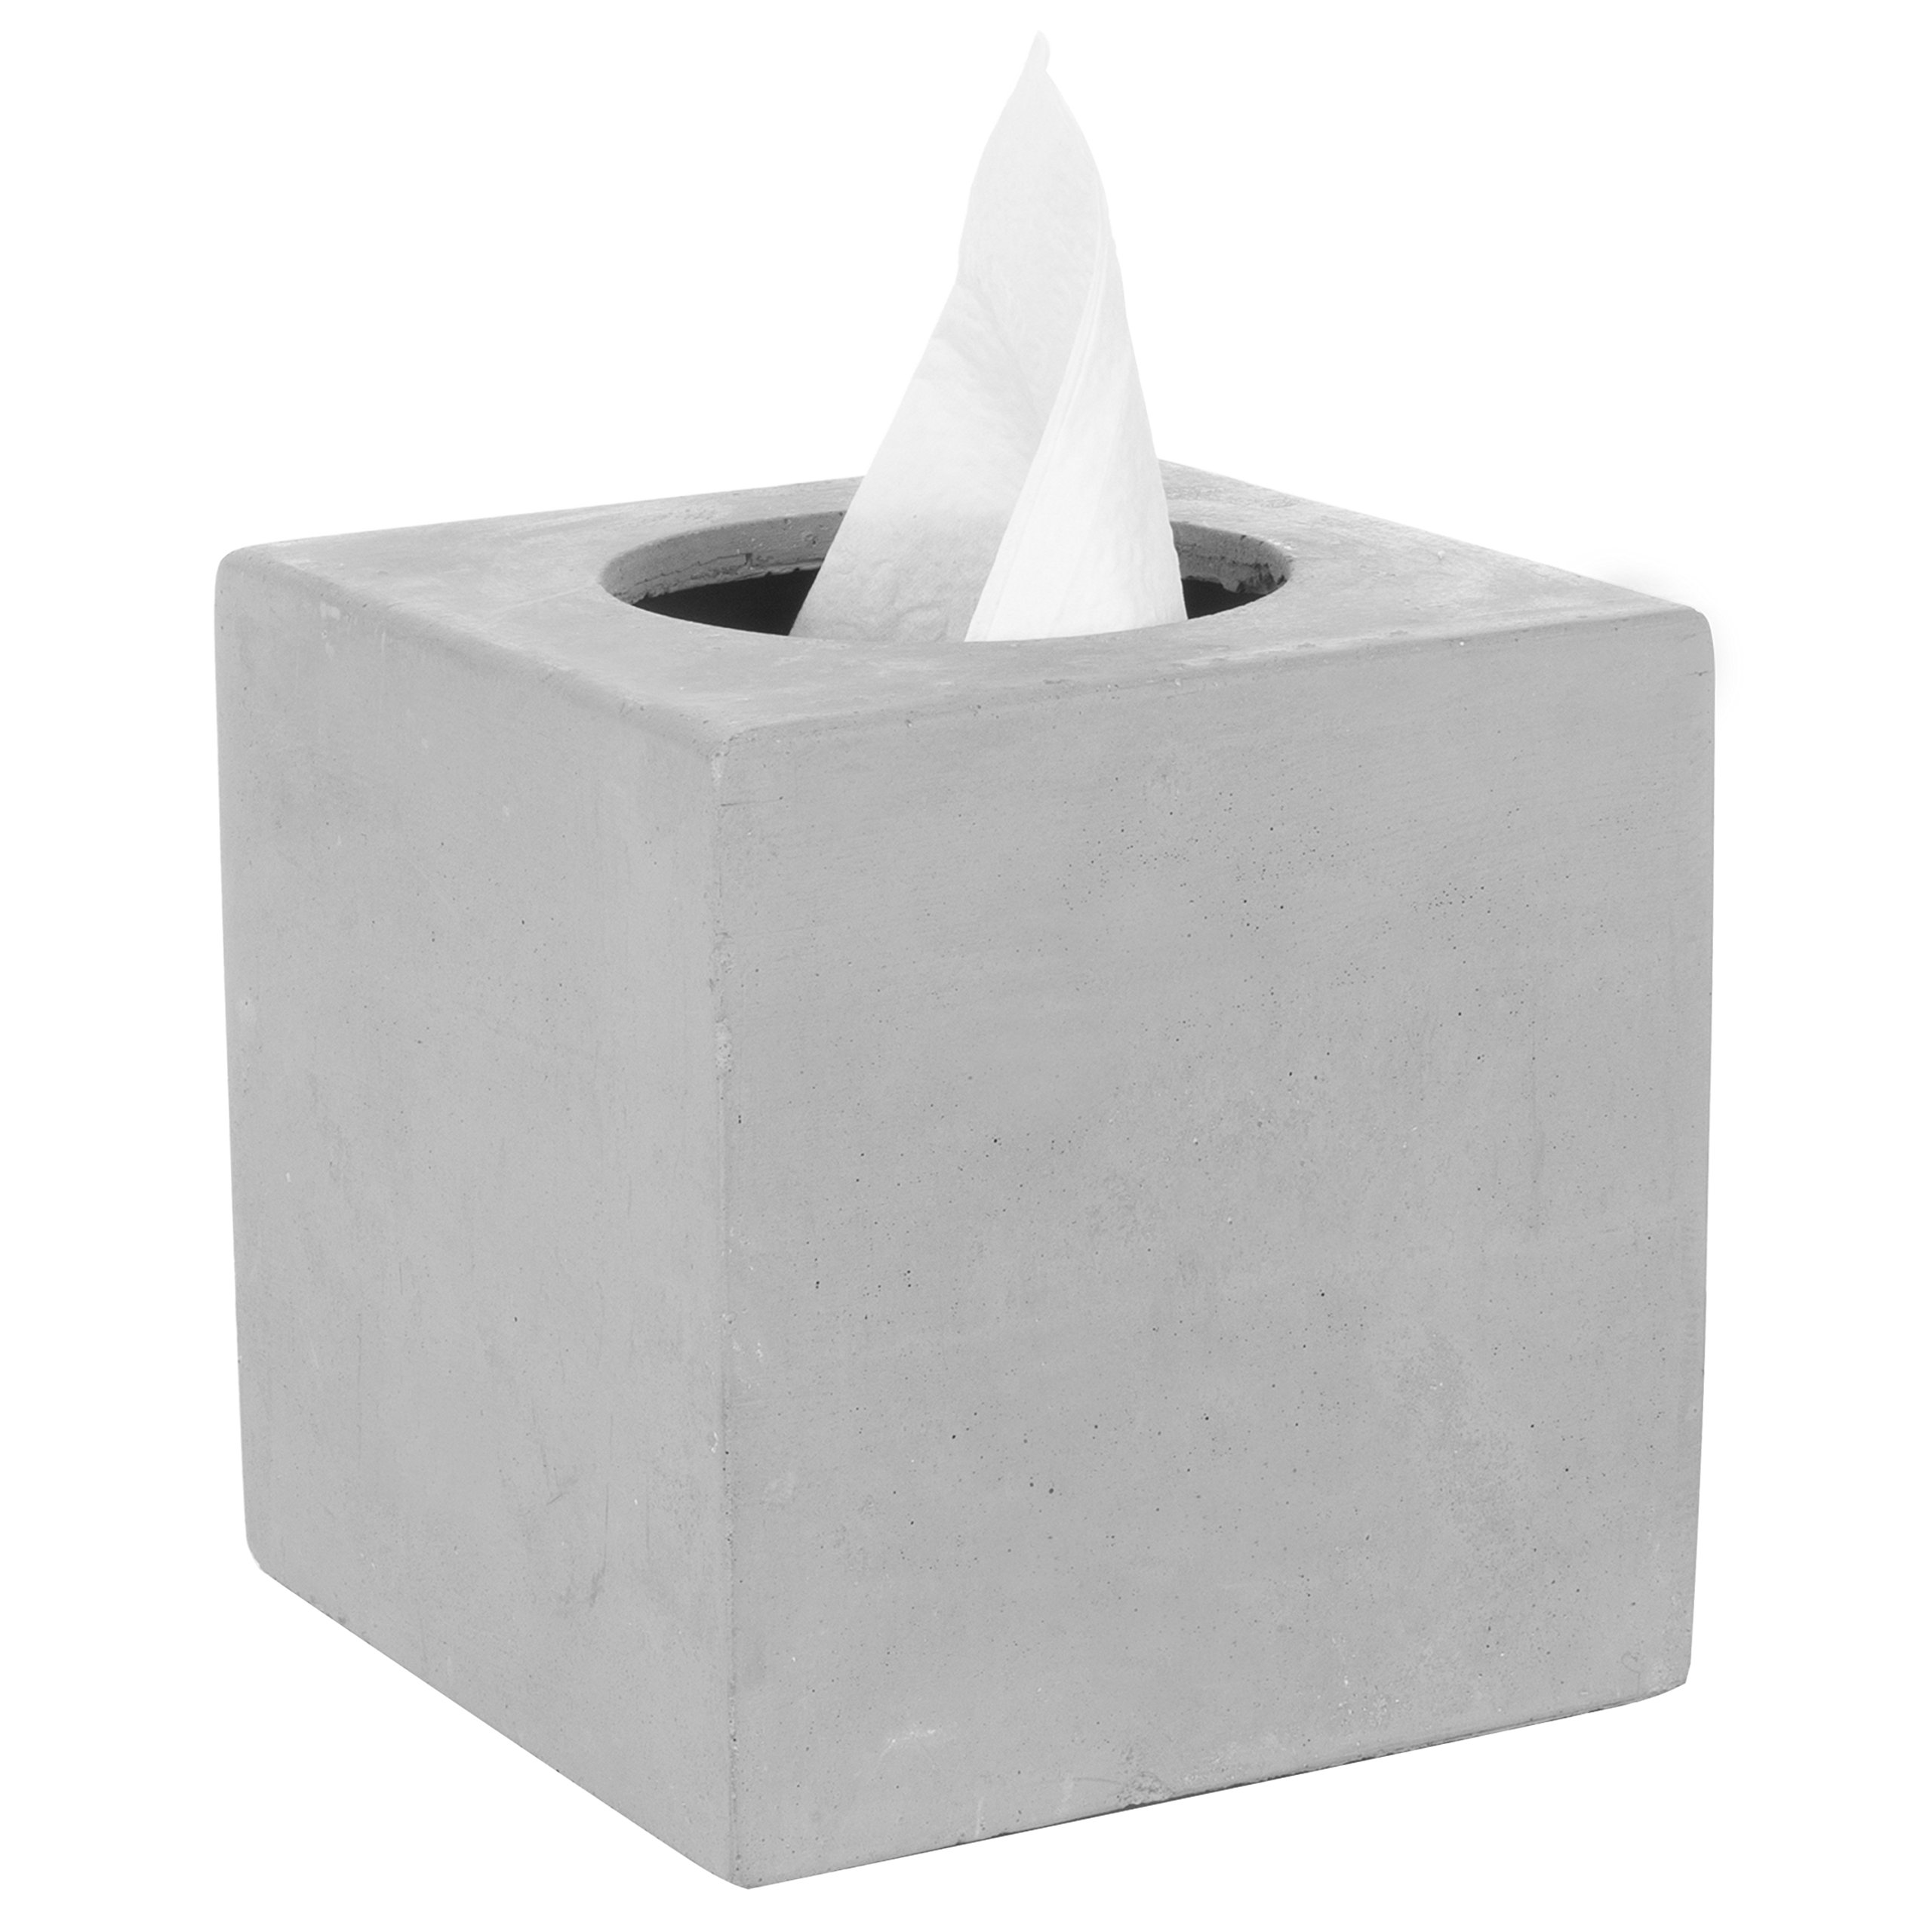 MyGift Modern Square Cement Tissue Box Holder with Open Bottom by MyGift